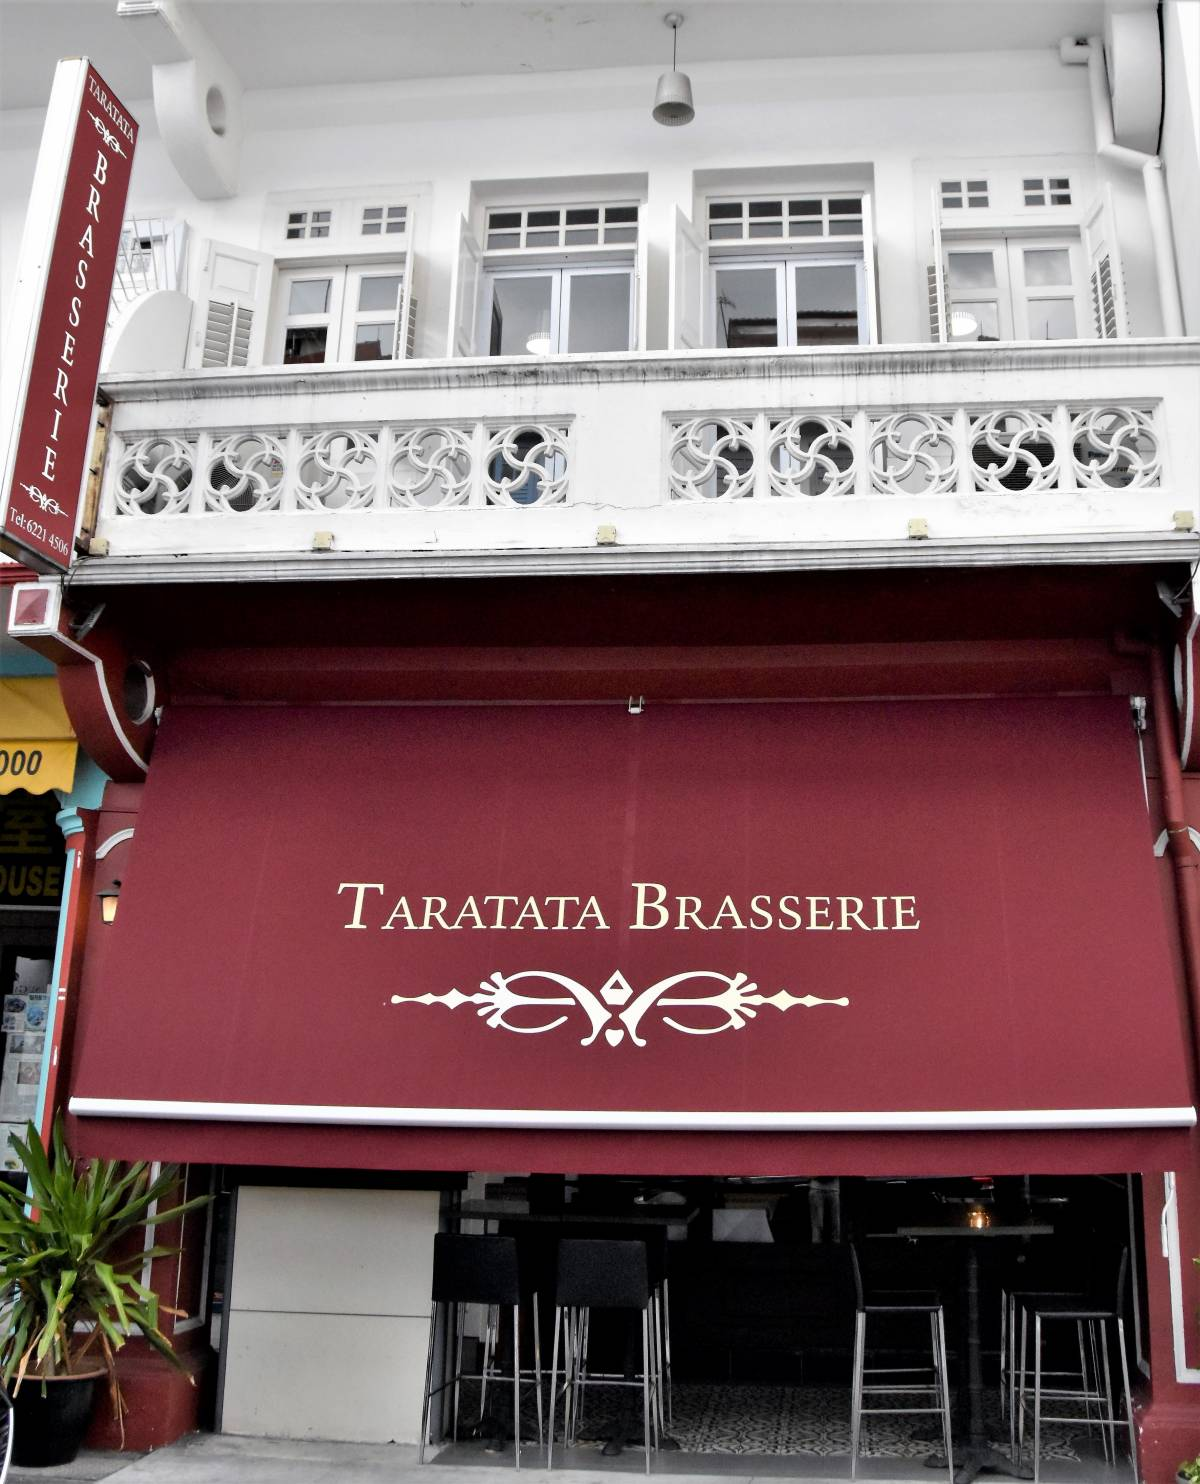 Taratata Brasserie, Singapore Launches French Cuisine Lunch and Dinner Set Menus